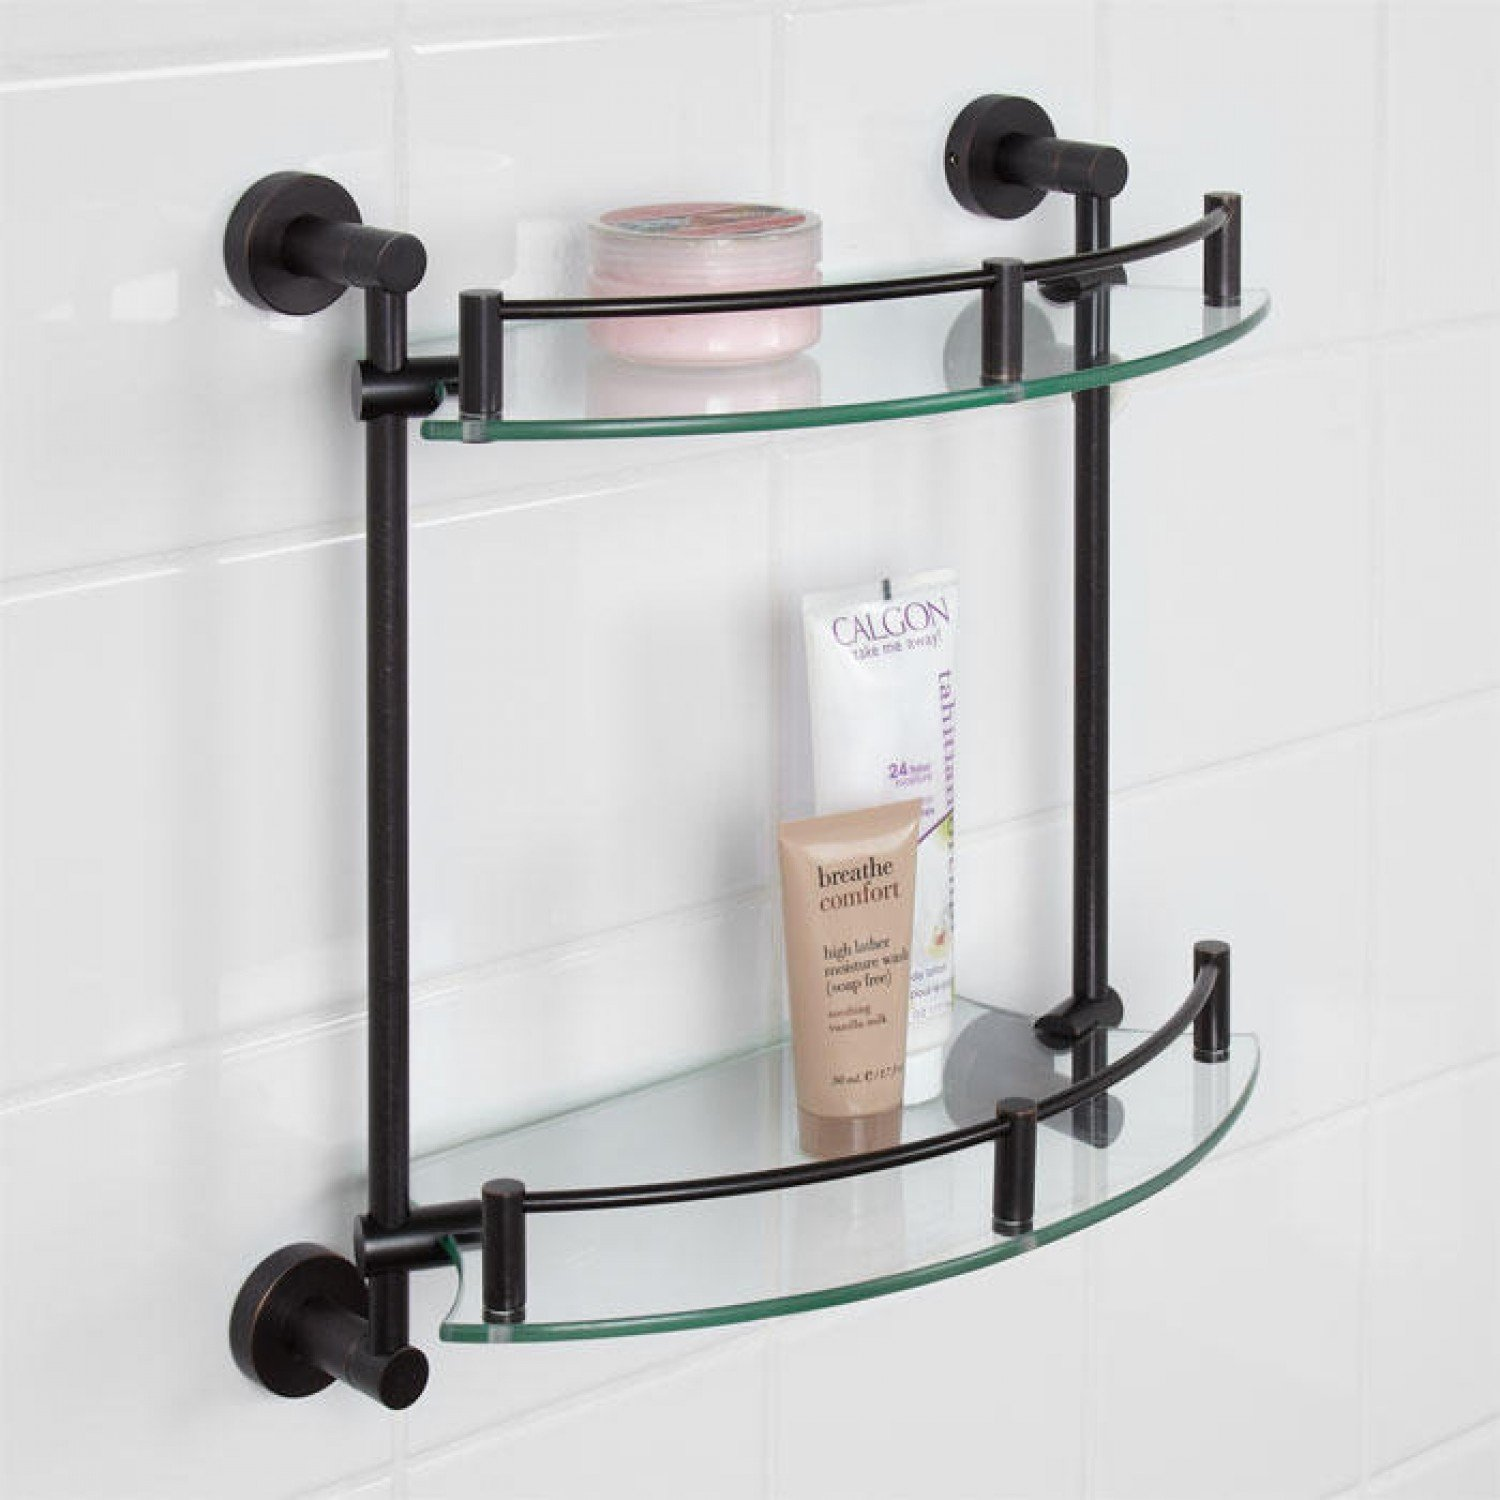 Naiture Tempered Glass Shelf - Two Shelves in Oil Rubbed Bronze Finish